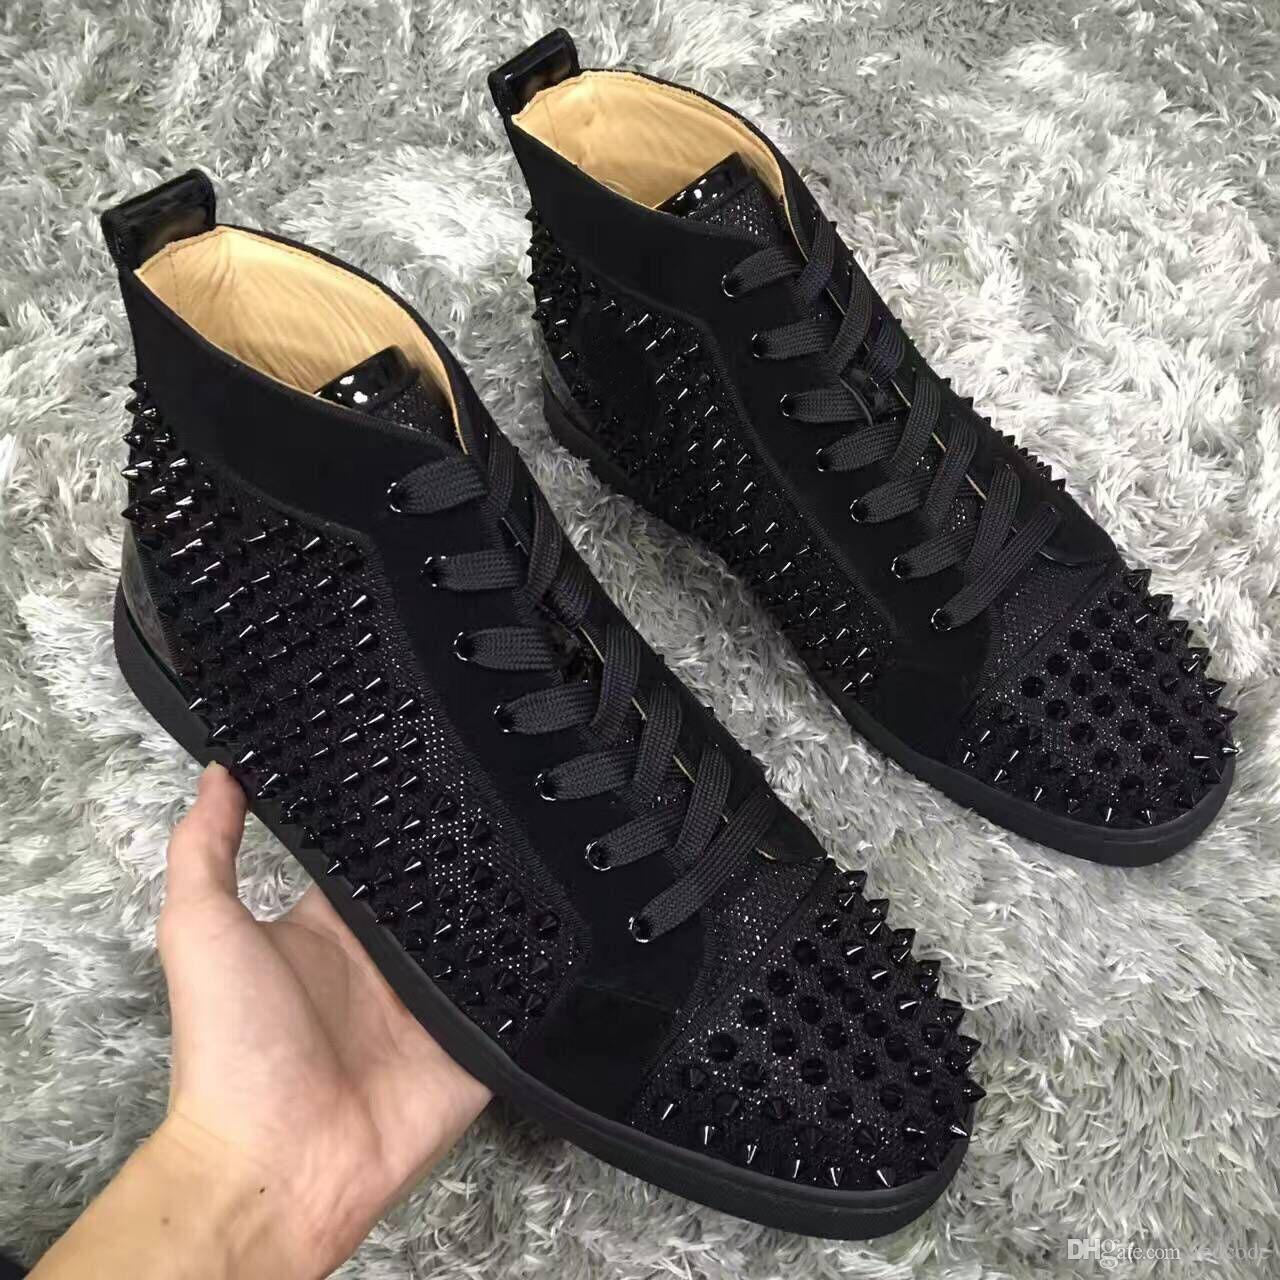 new styles fc886 6d5ef Original Cheap Red Bottom Sneakers for Men Luxury Black glitter with Spikes  Fashion Casual Mens Womens Shoes Designer Party Wedding